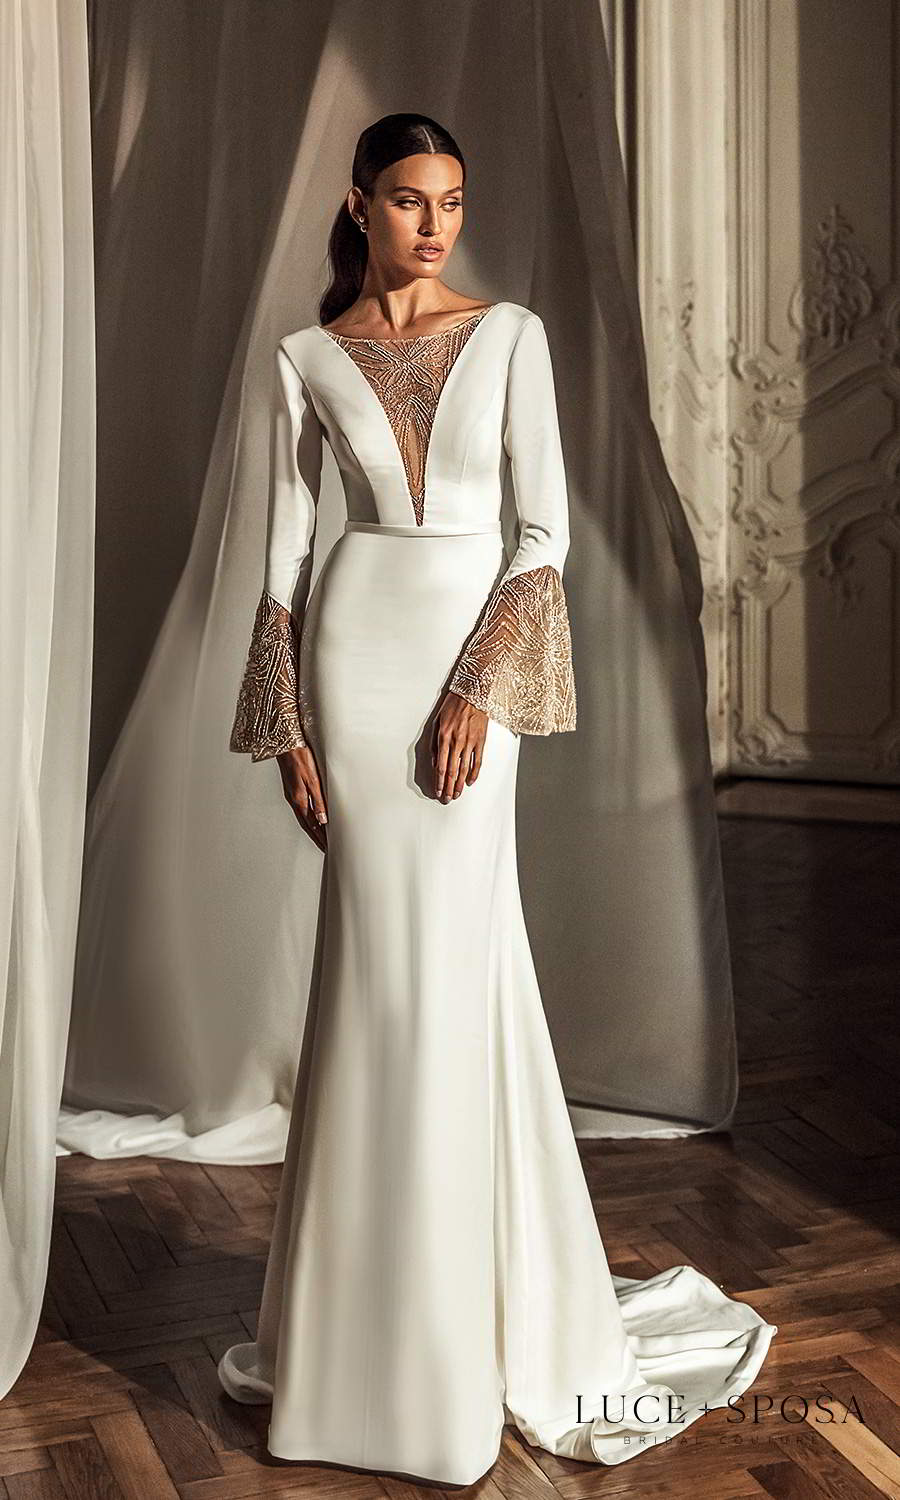 luce sposa 2021 shades of couture bridal flare sleeves plunging v neckline clean minimalist wedding dress chapel train scoop back (parker) mv